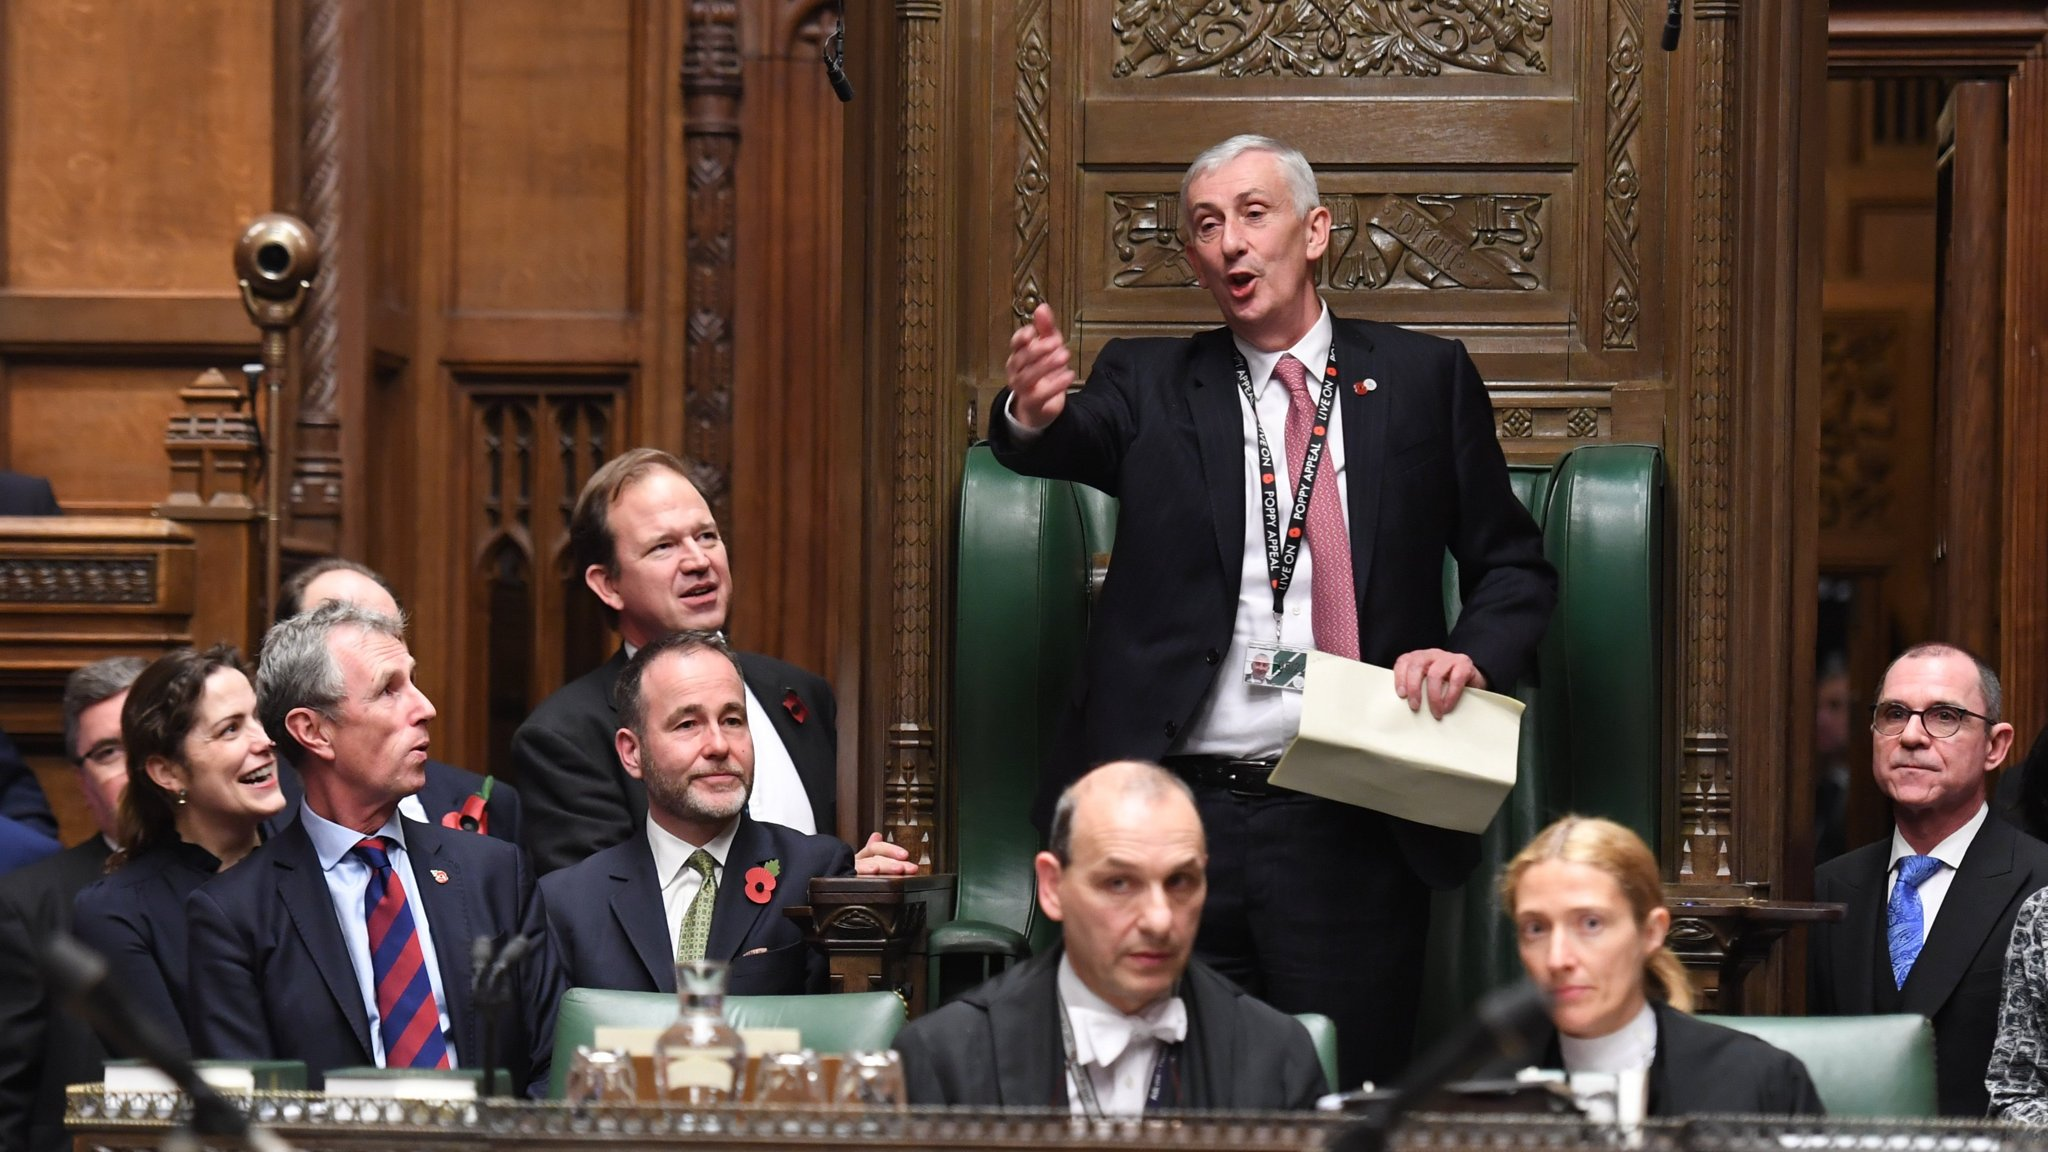 Sir Lindsay Hoyle elected as House of Commons Speaker | Financial Times